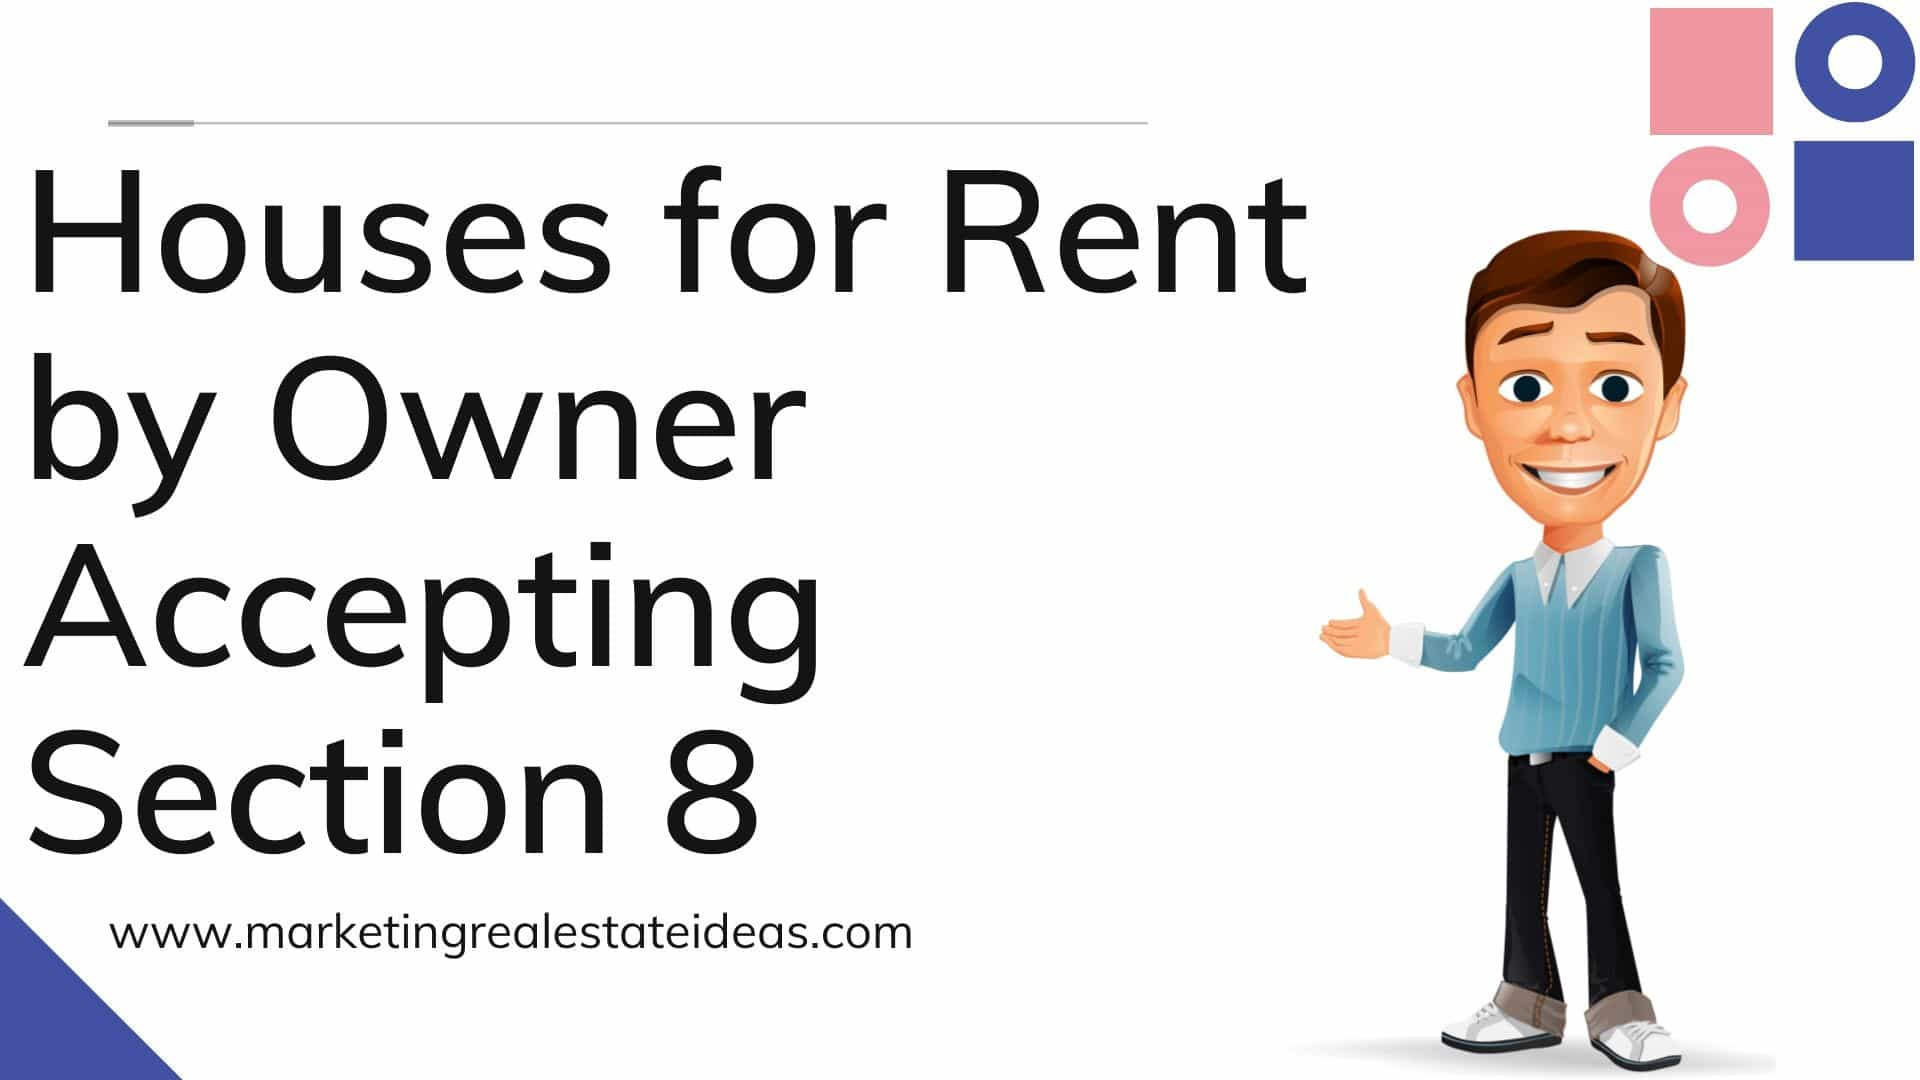 Houses for Rent by Owner Accepting |Renting to Section 8 ...